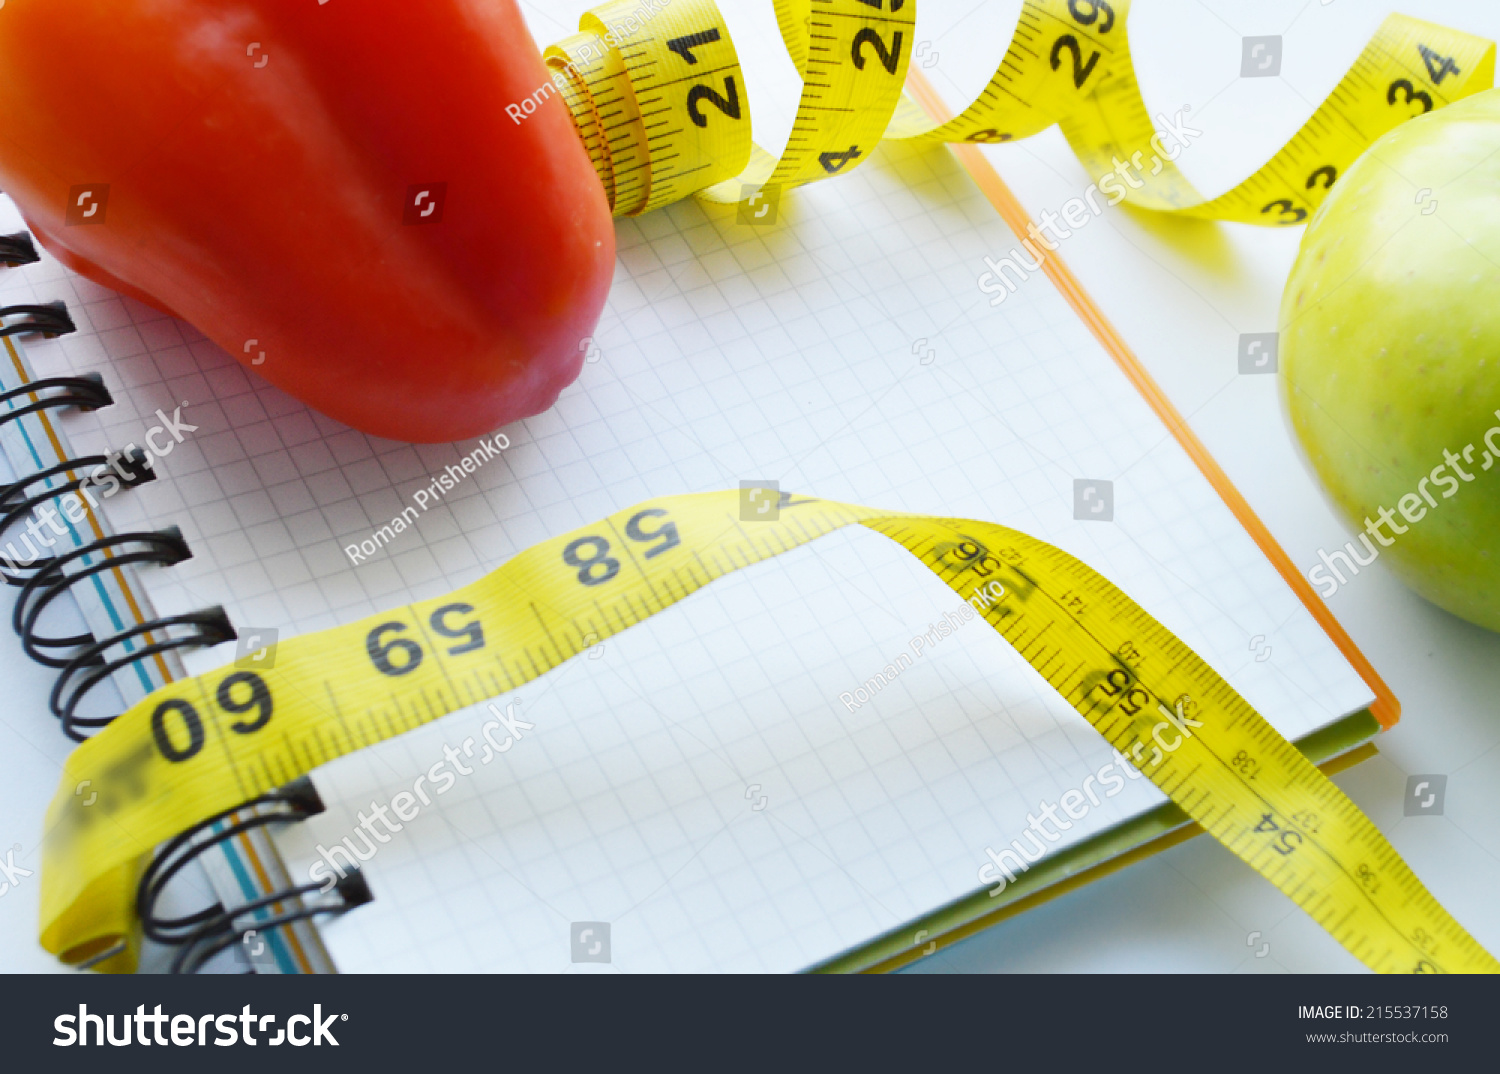 Terrific Vegetables Fruits Weight Loss Measuring Tape Stock Photo Download Free Architecture Designs Scobabritishbridgeorg